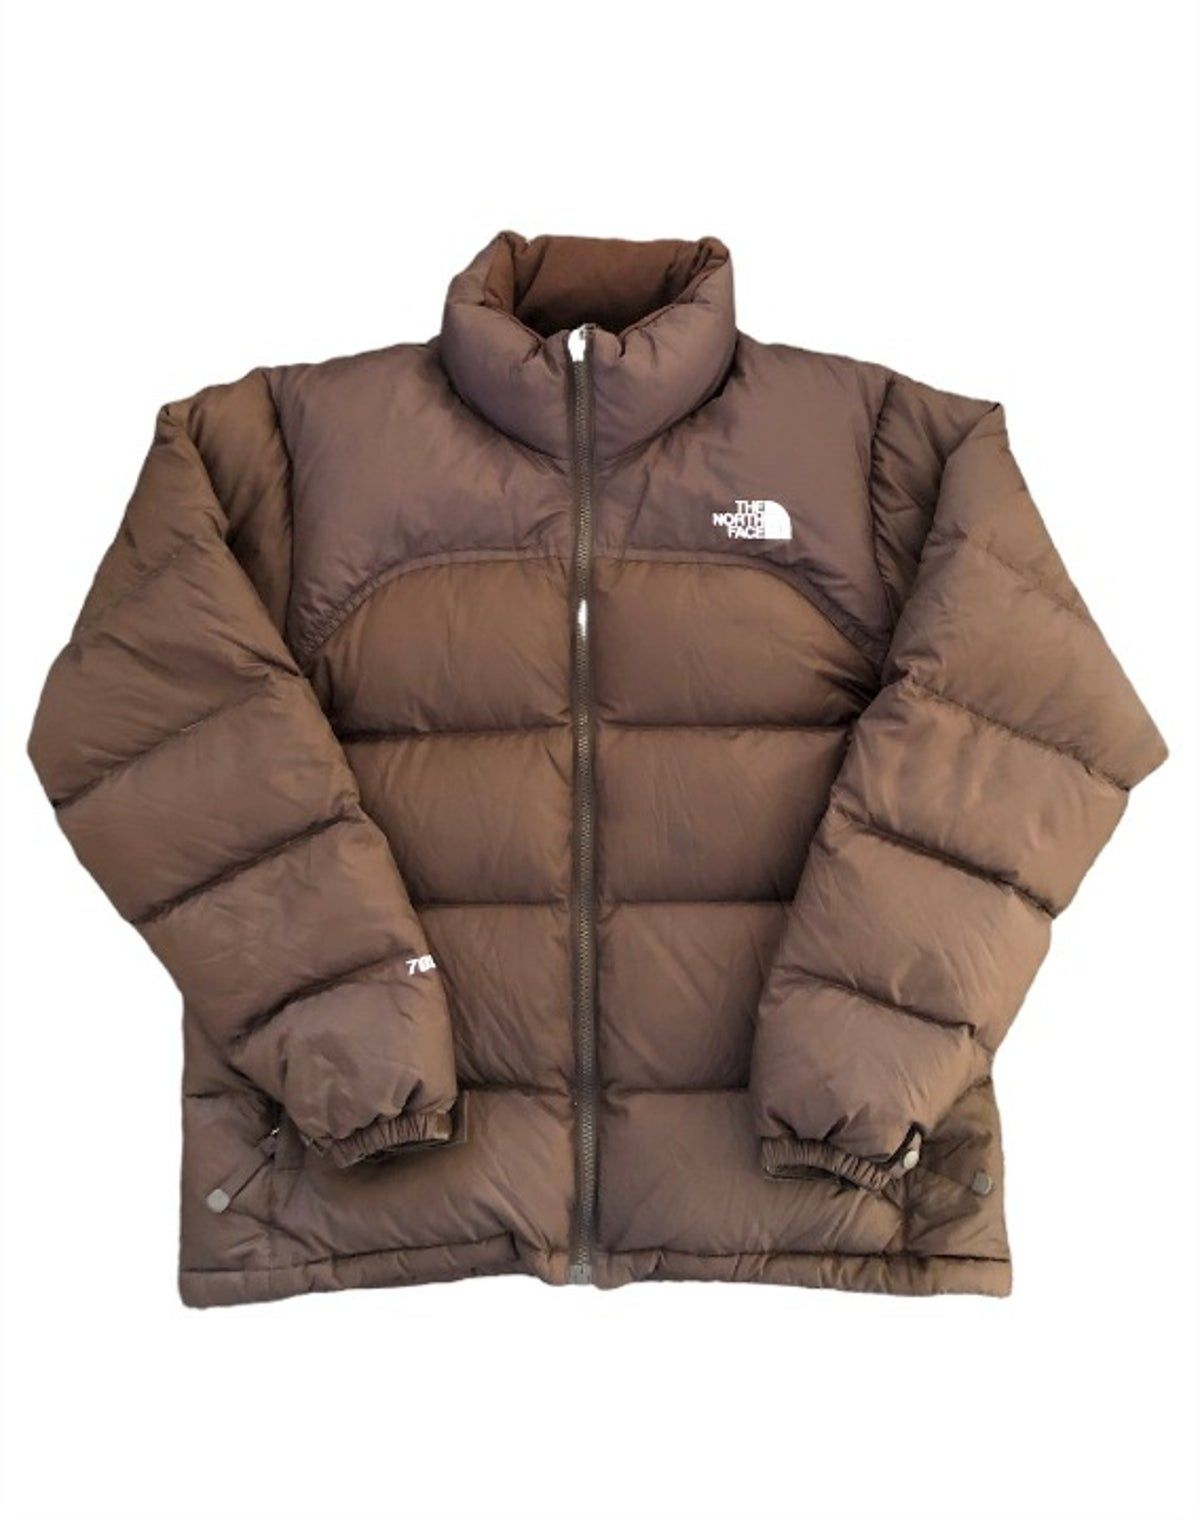 Pin By Teemoney On Beauty North Face Outfits Brown Puffer North Face Puffer Jacket [ 1521 x 1200 Pixel ]